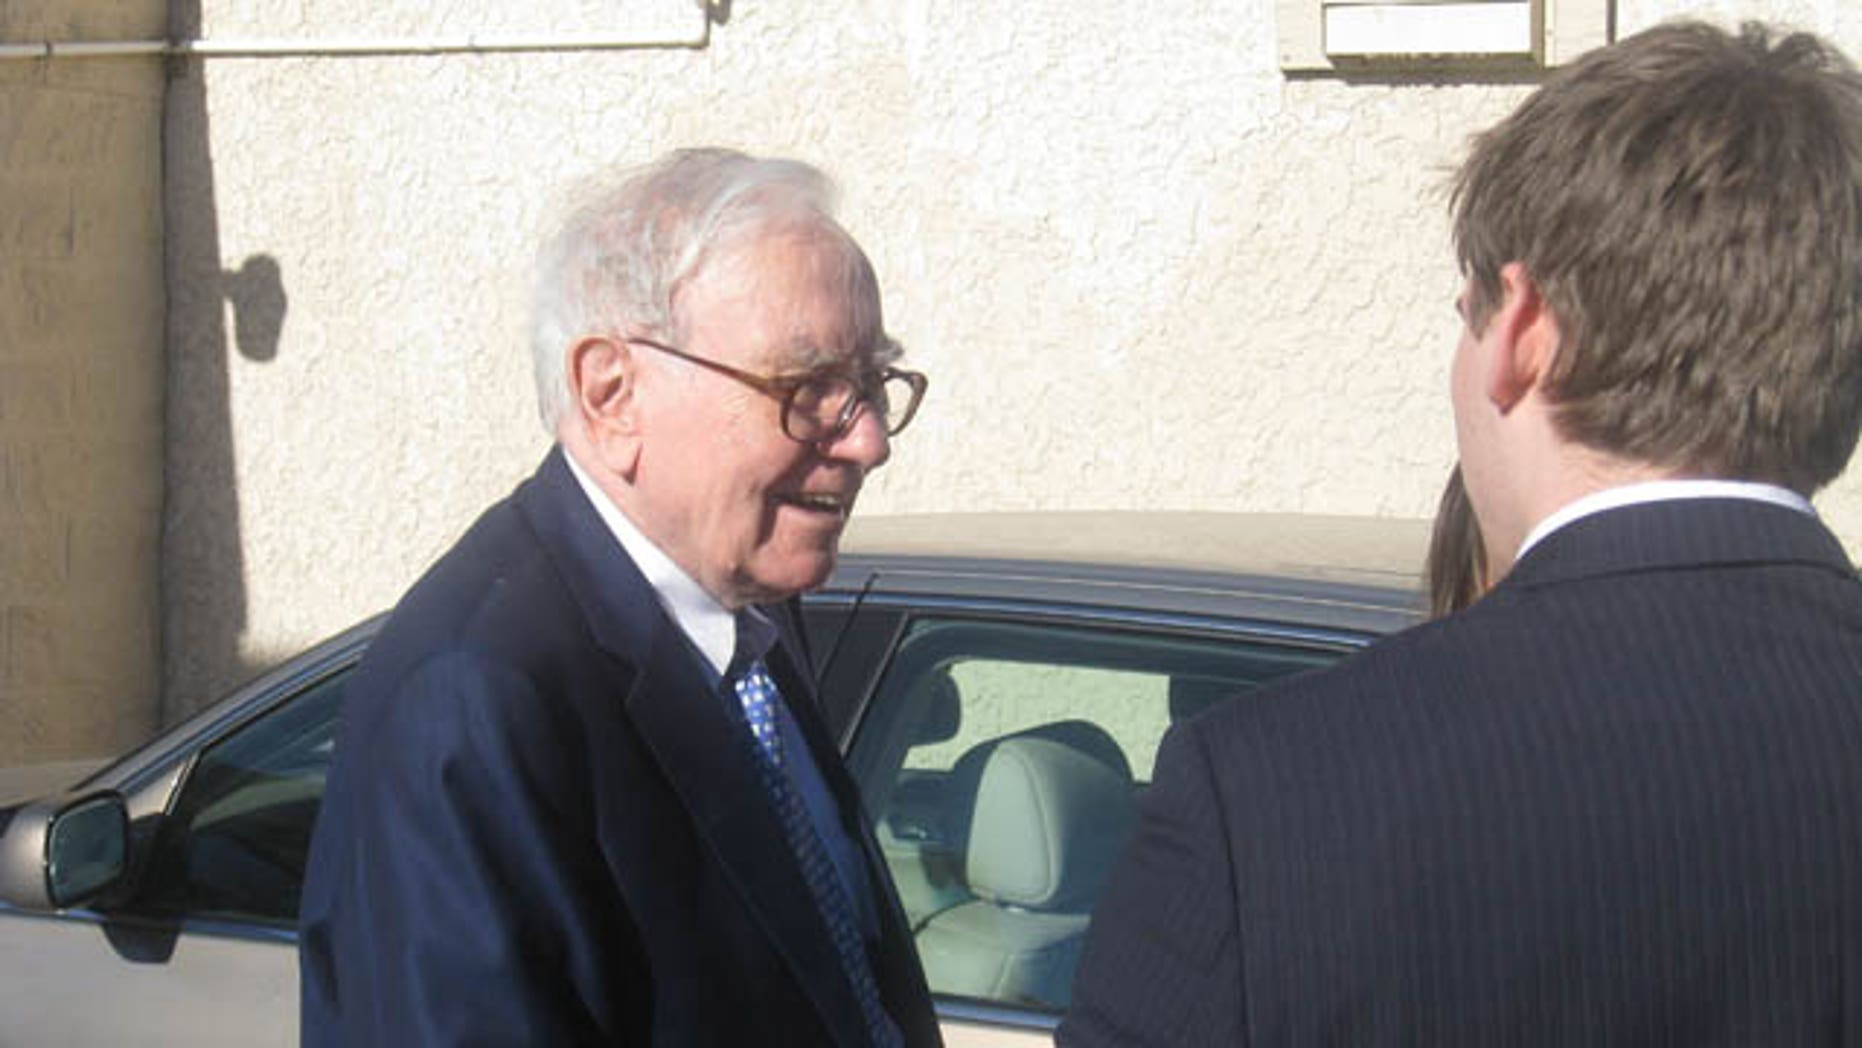 This photo shows Warren Buffett.